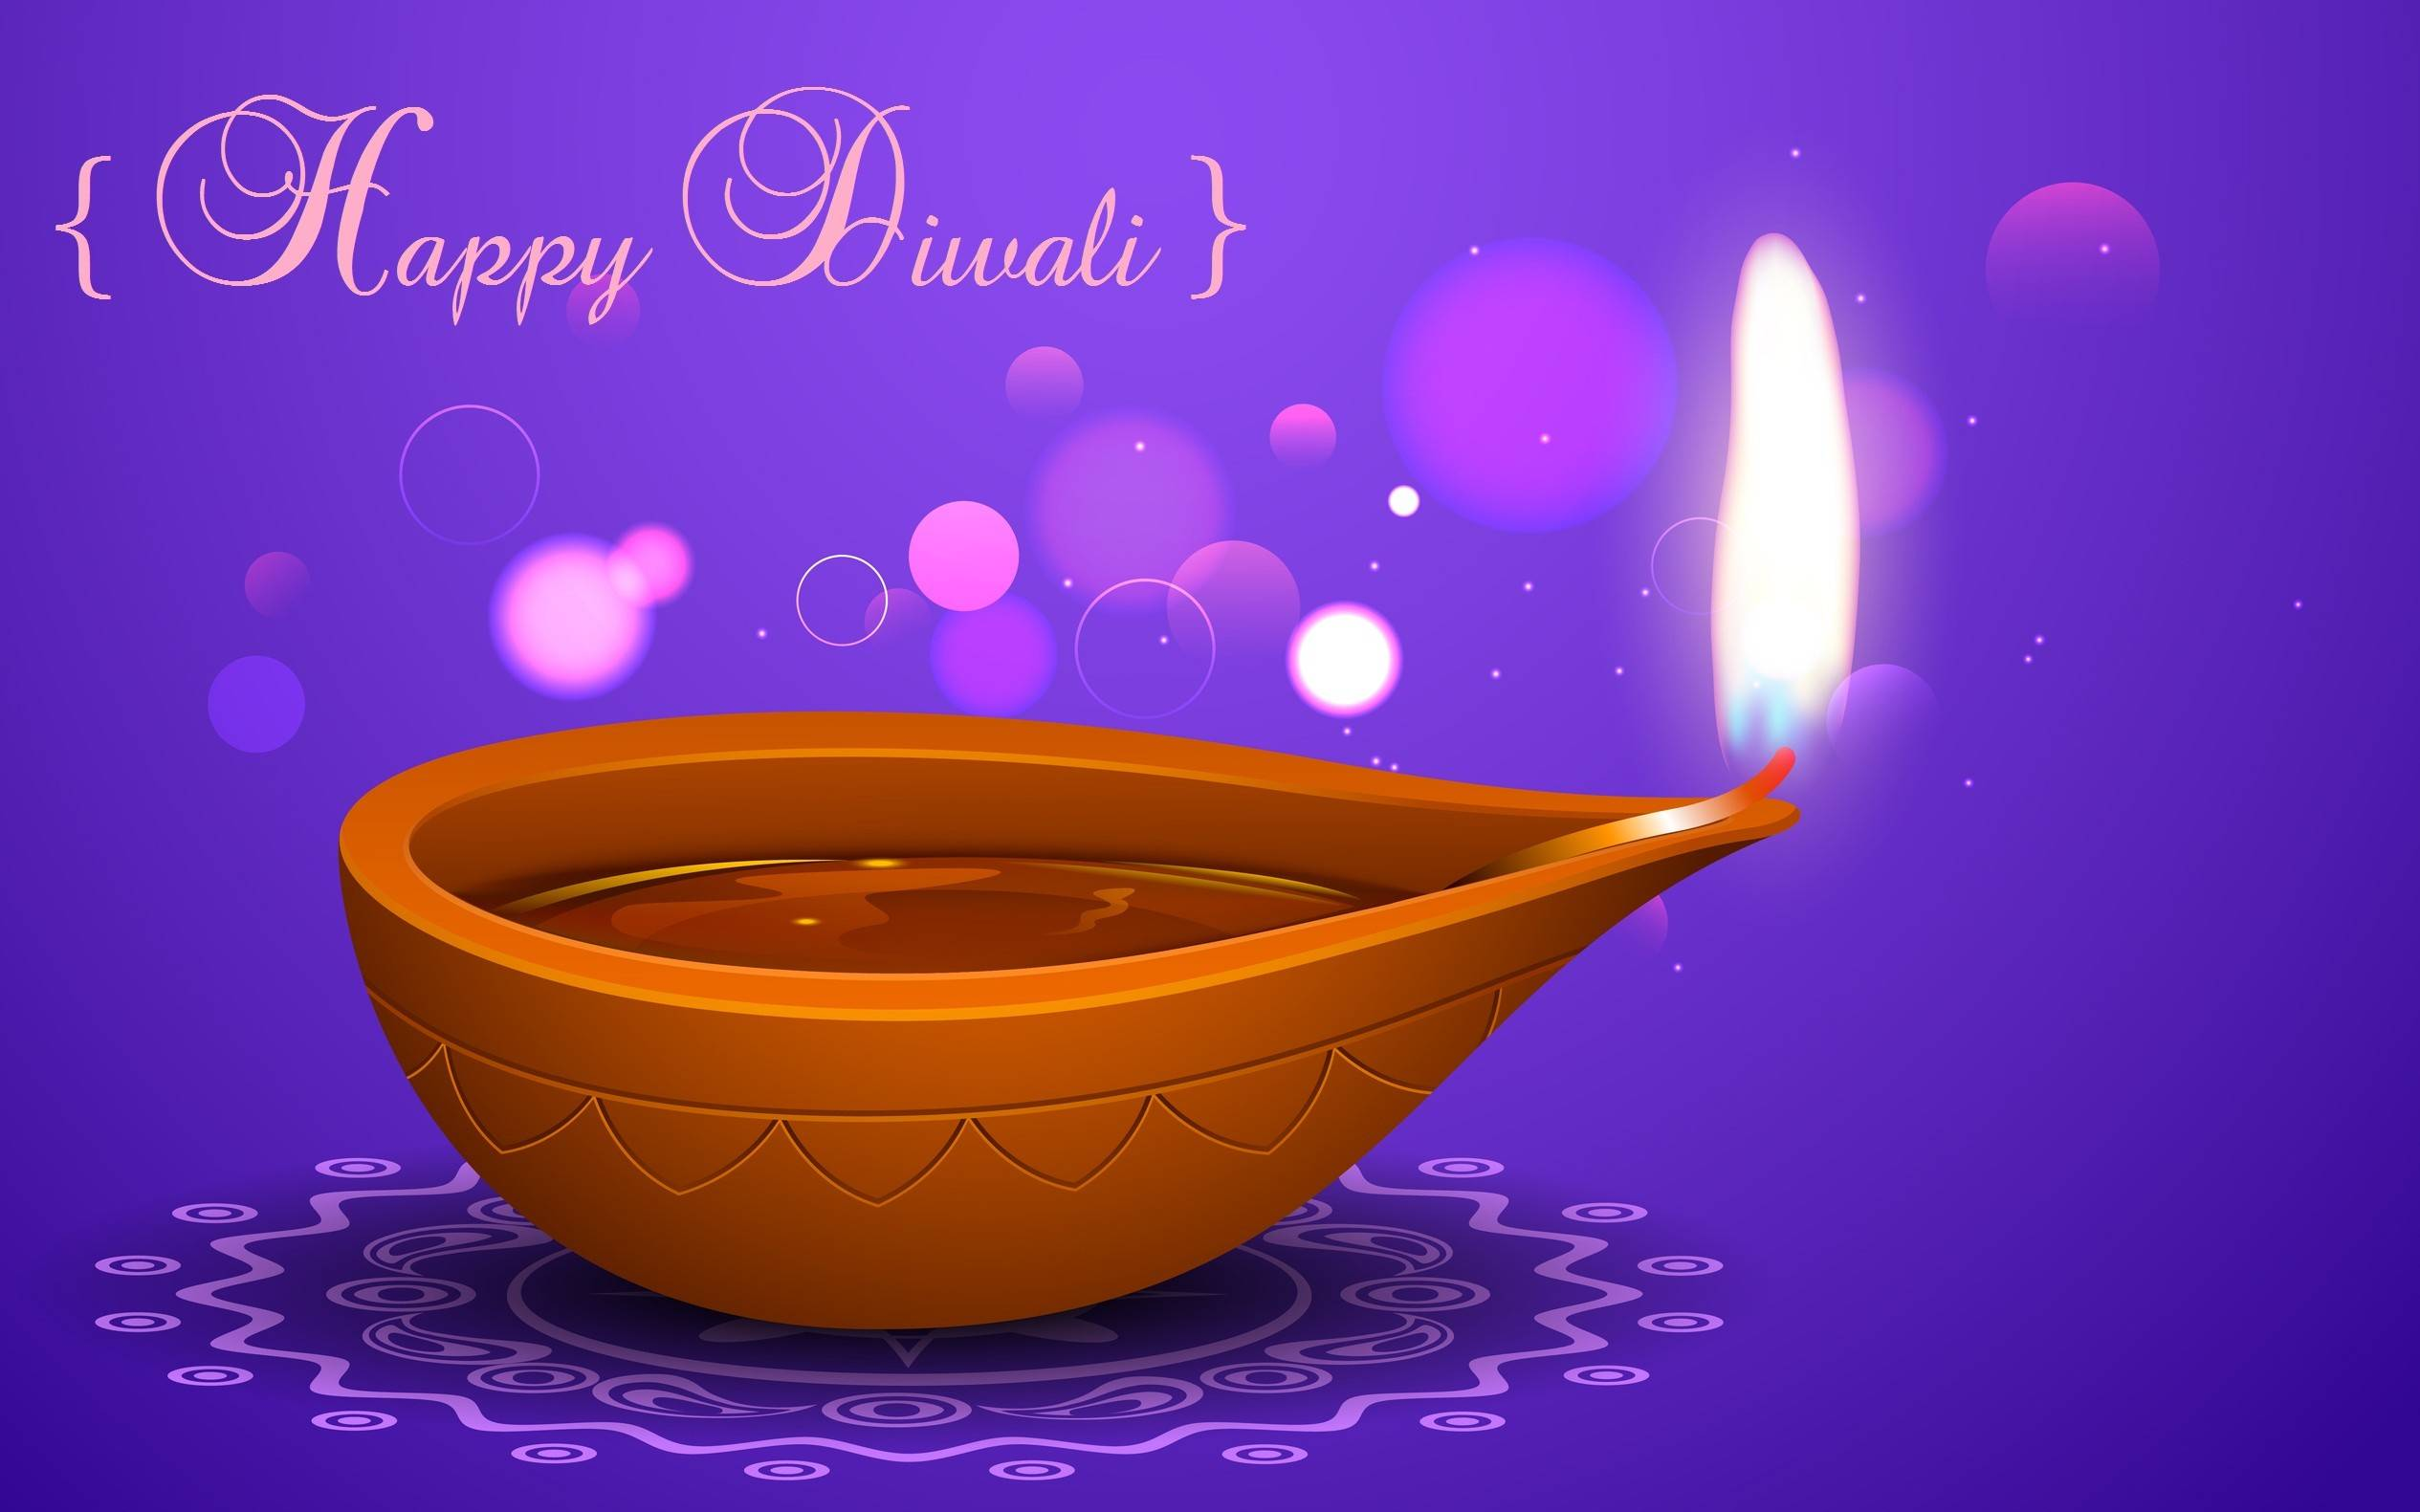 Advance Diwali Pictures for Whatsapp dp